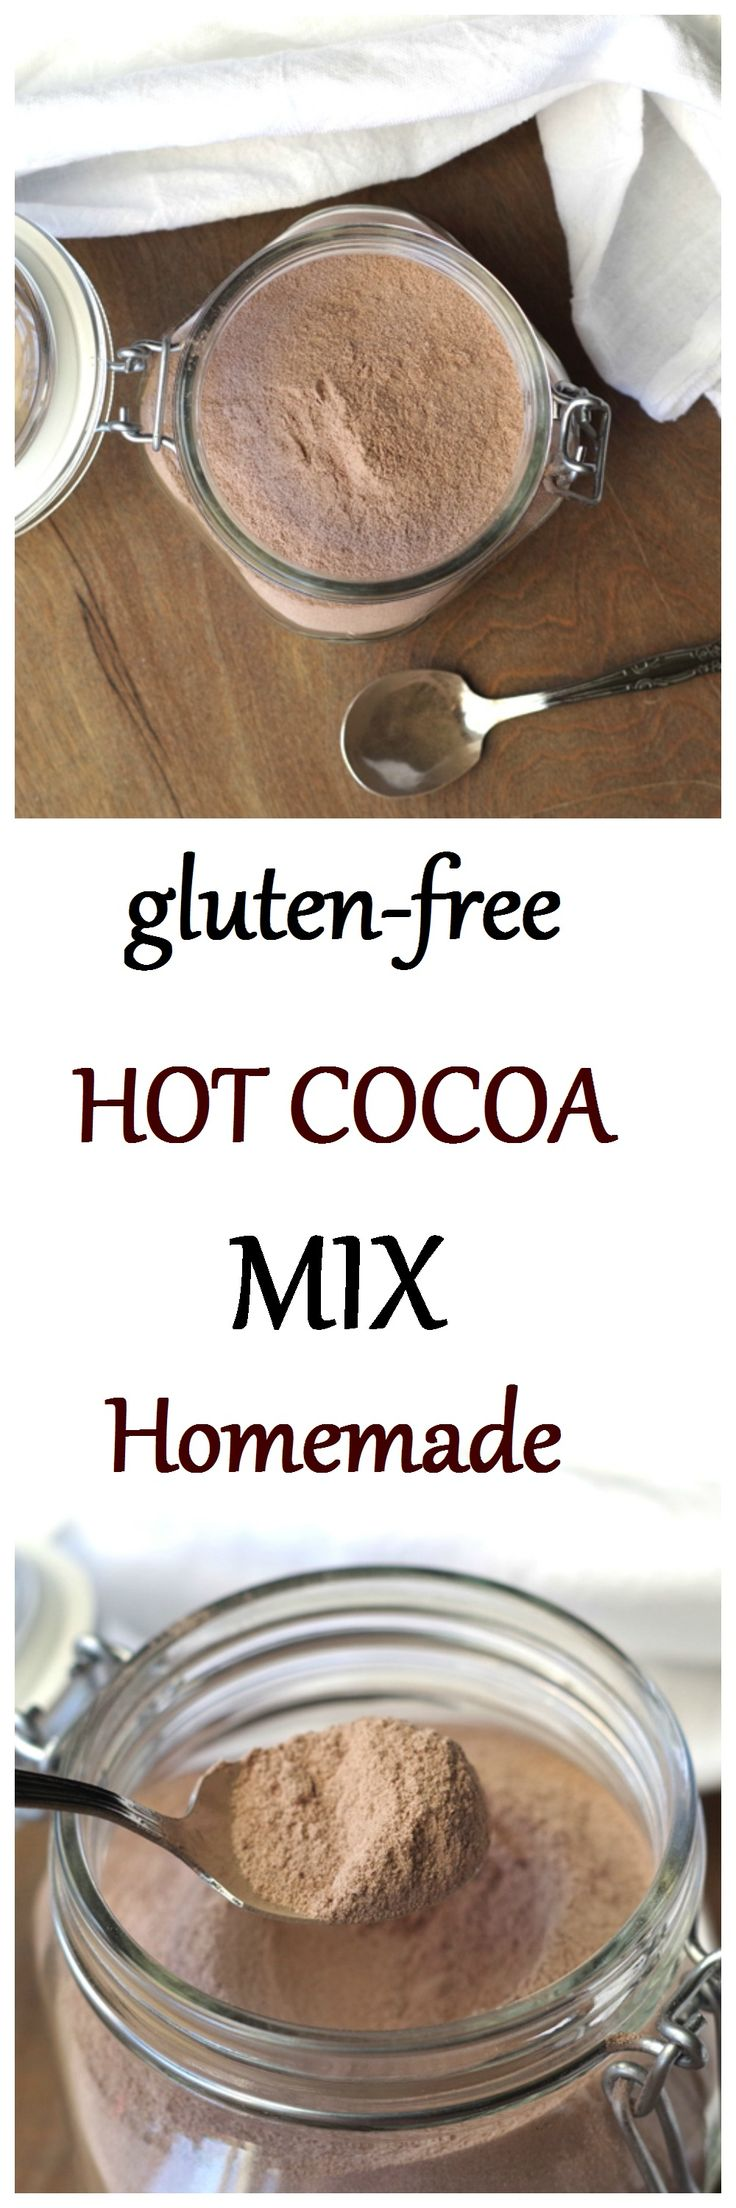 Best 25+ Hot cocoa mixes ideas only on Pinterest | Chocolate ...